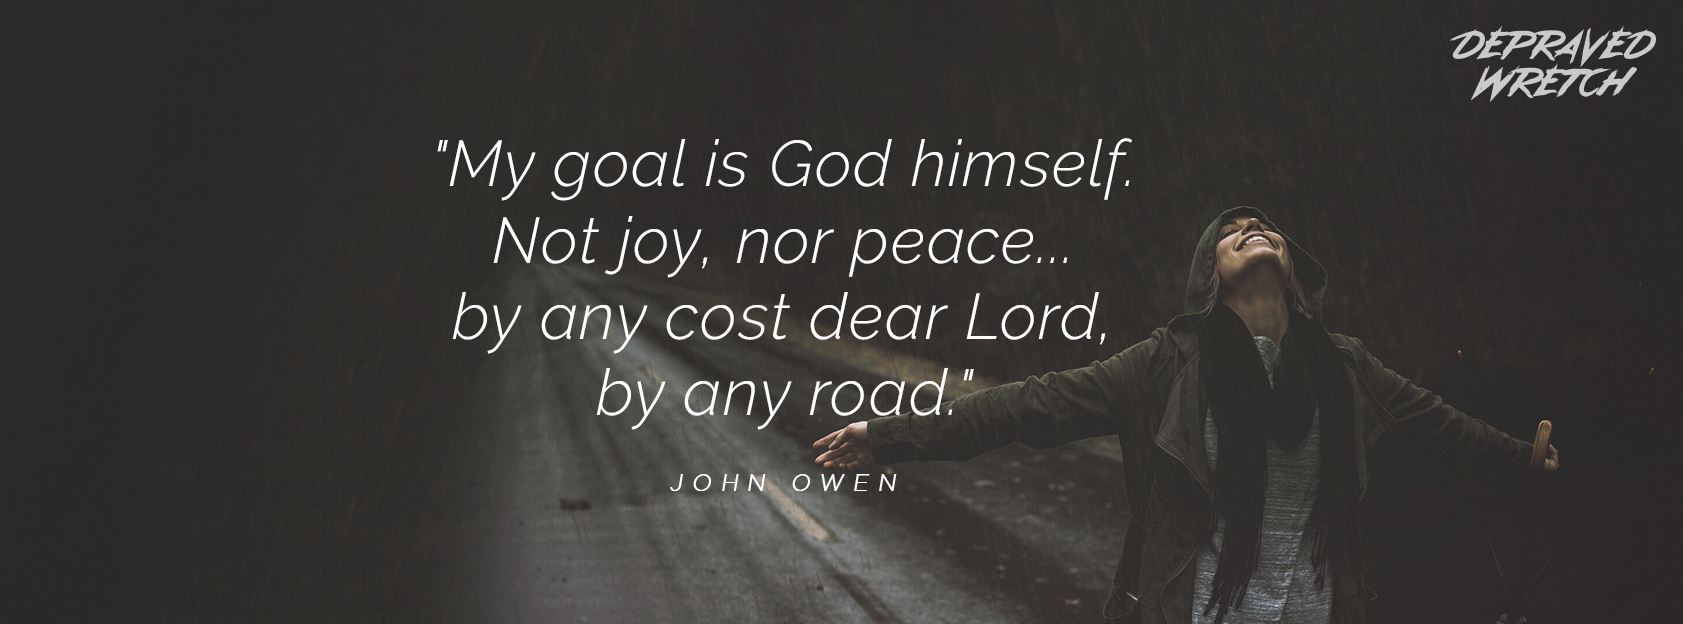 John Owen Facebook Cover Photo